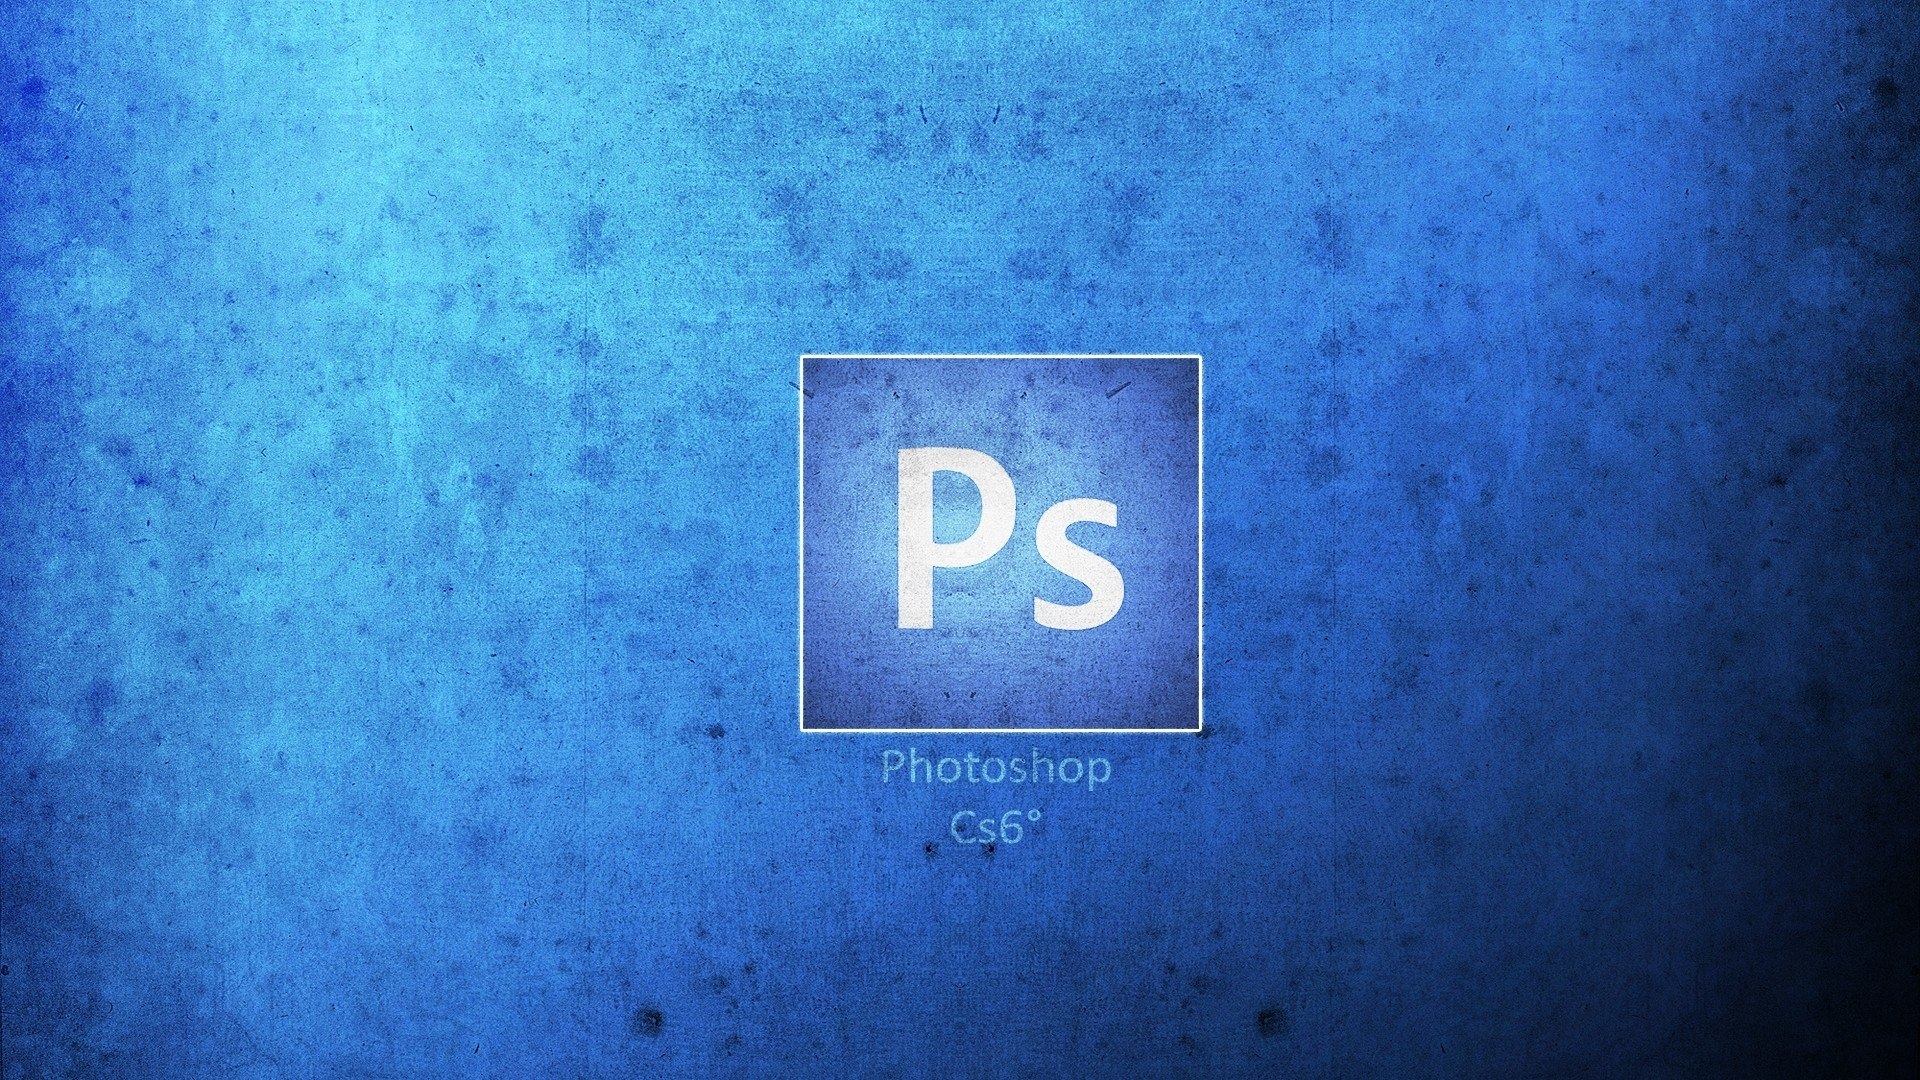 4 Adobe Photoshop HD Wallpapers | Backgrounds - Wallpaper Abyss